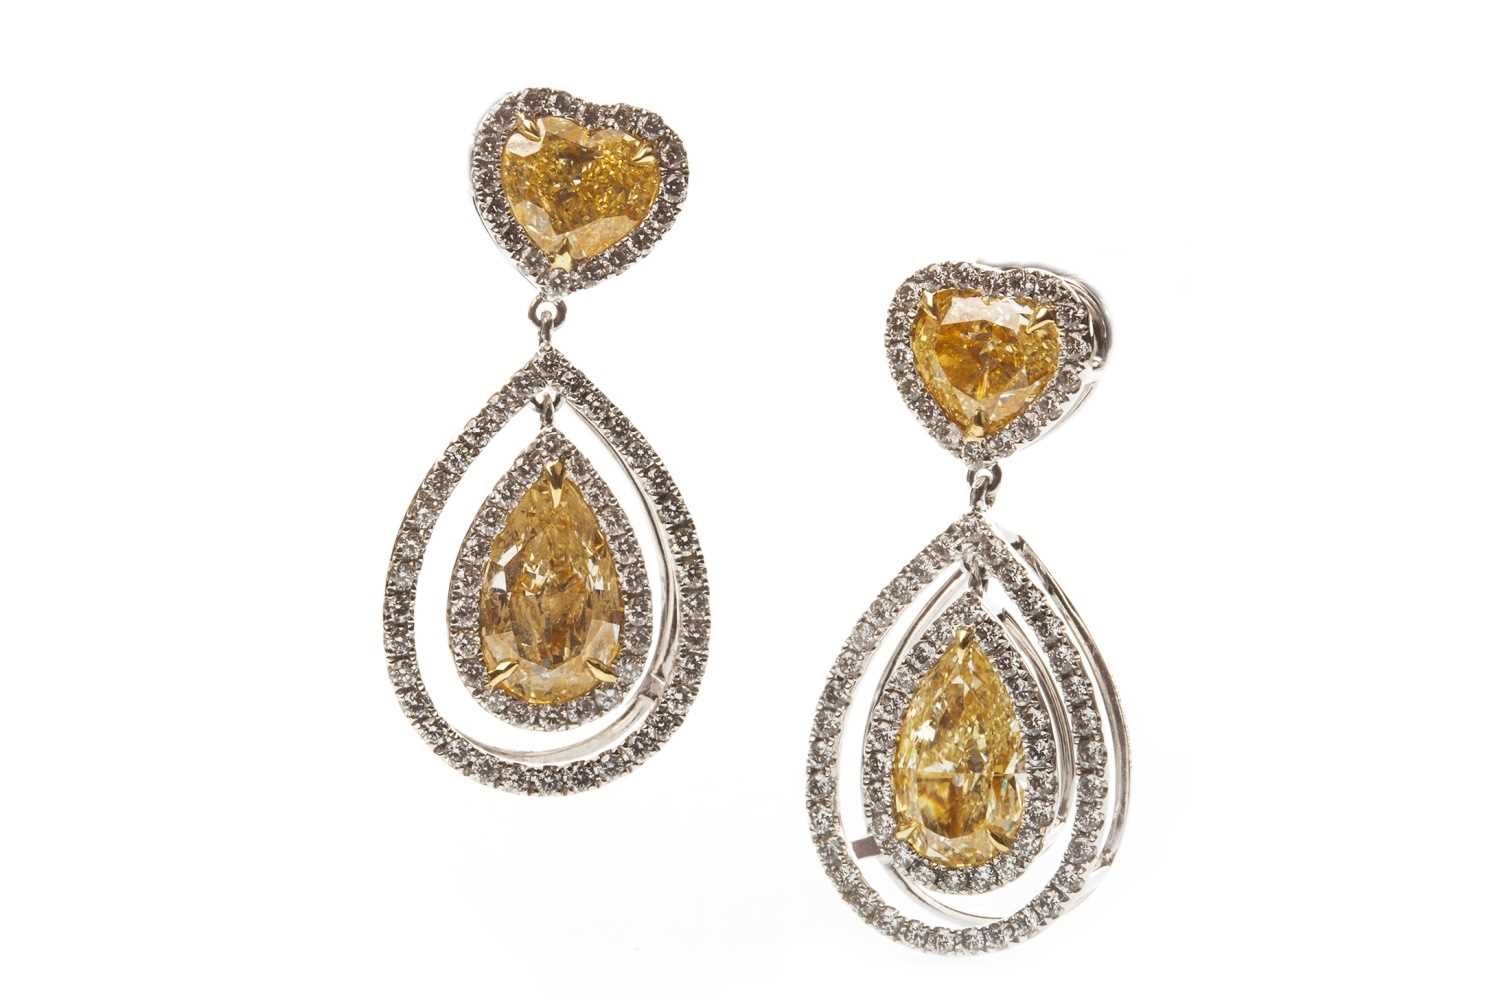 Lot 1-A CERTIFICATED PAIR OF YELLOW AND WHITE DIAMOND EARRINGS